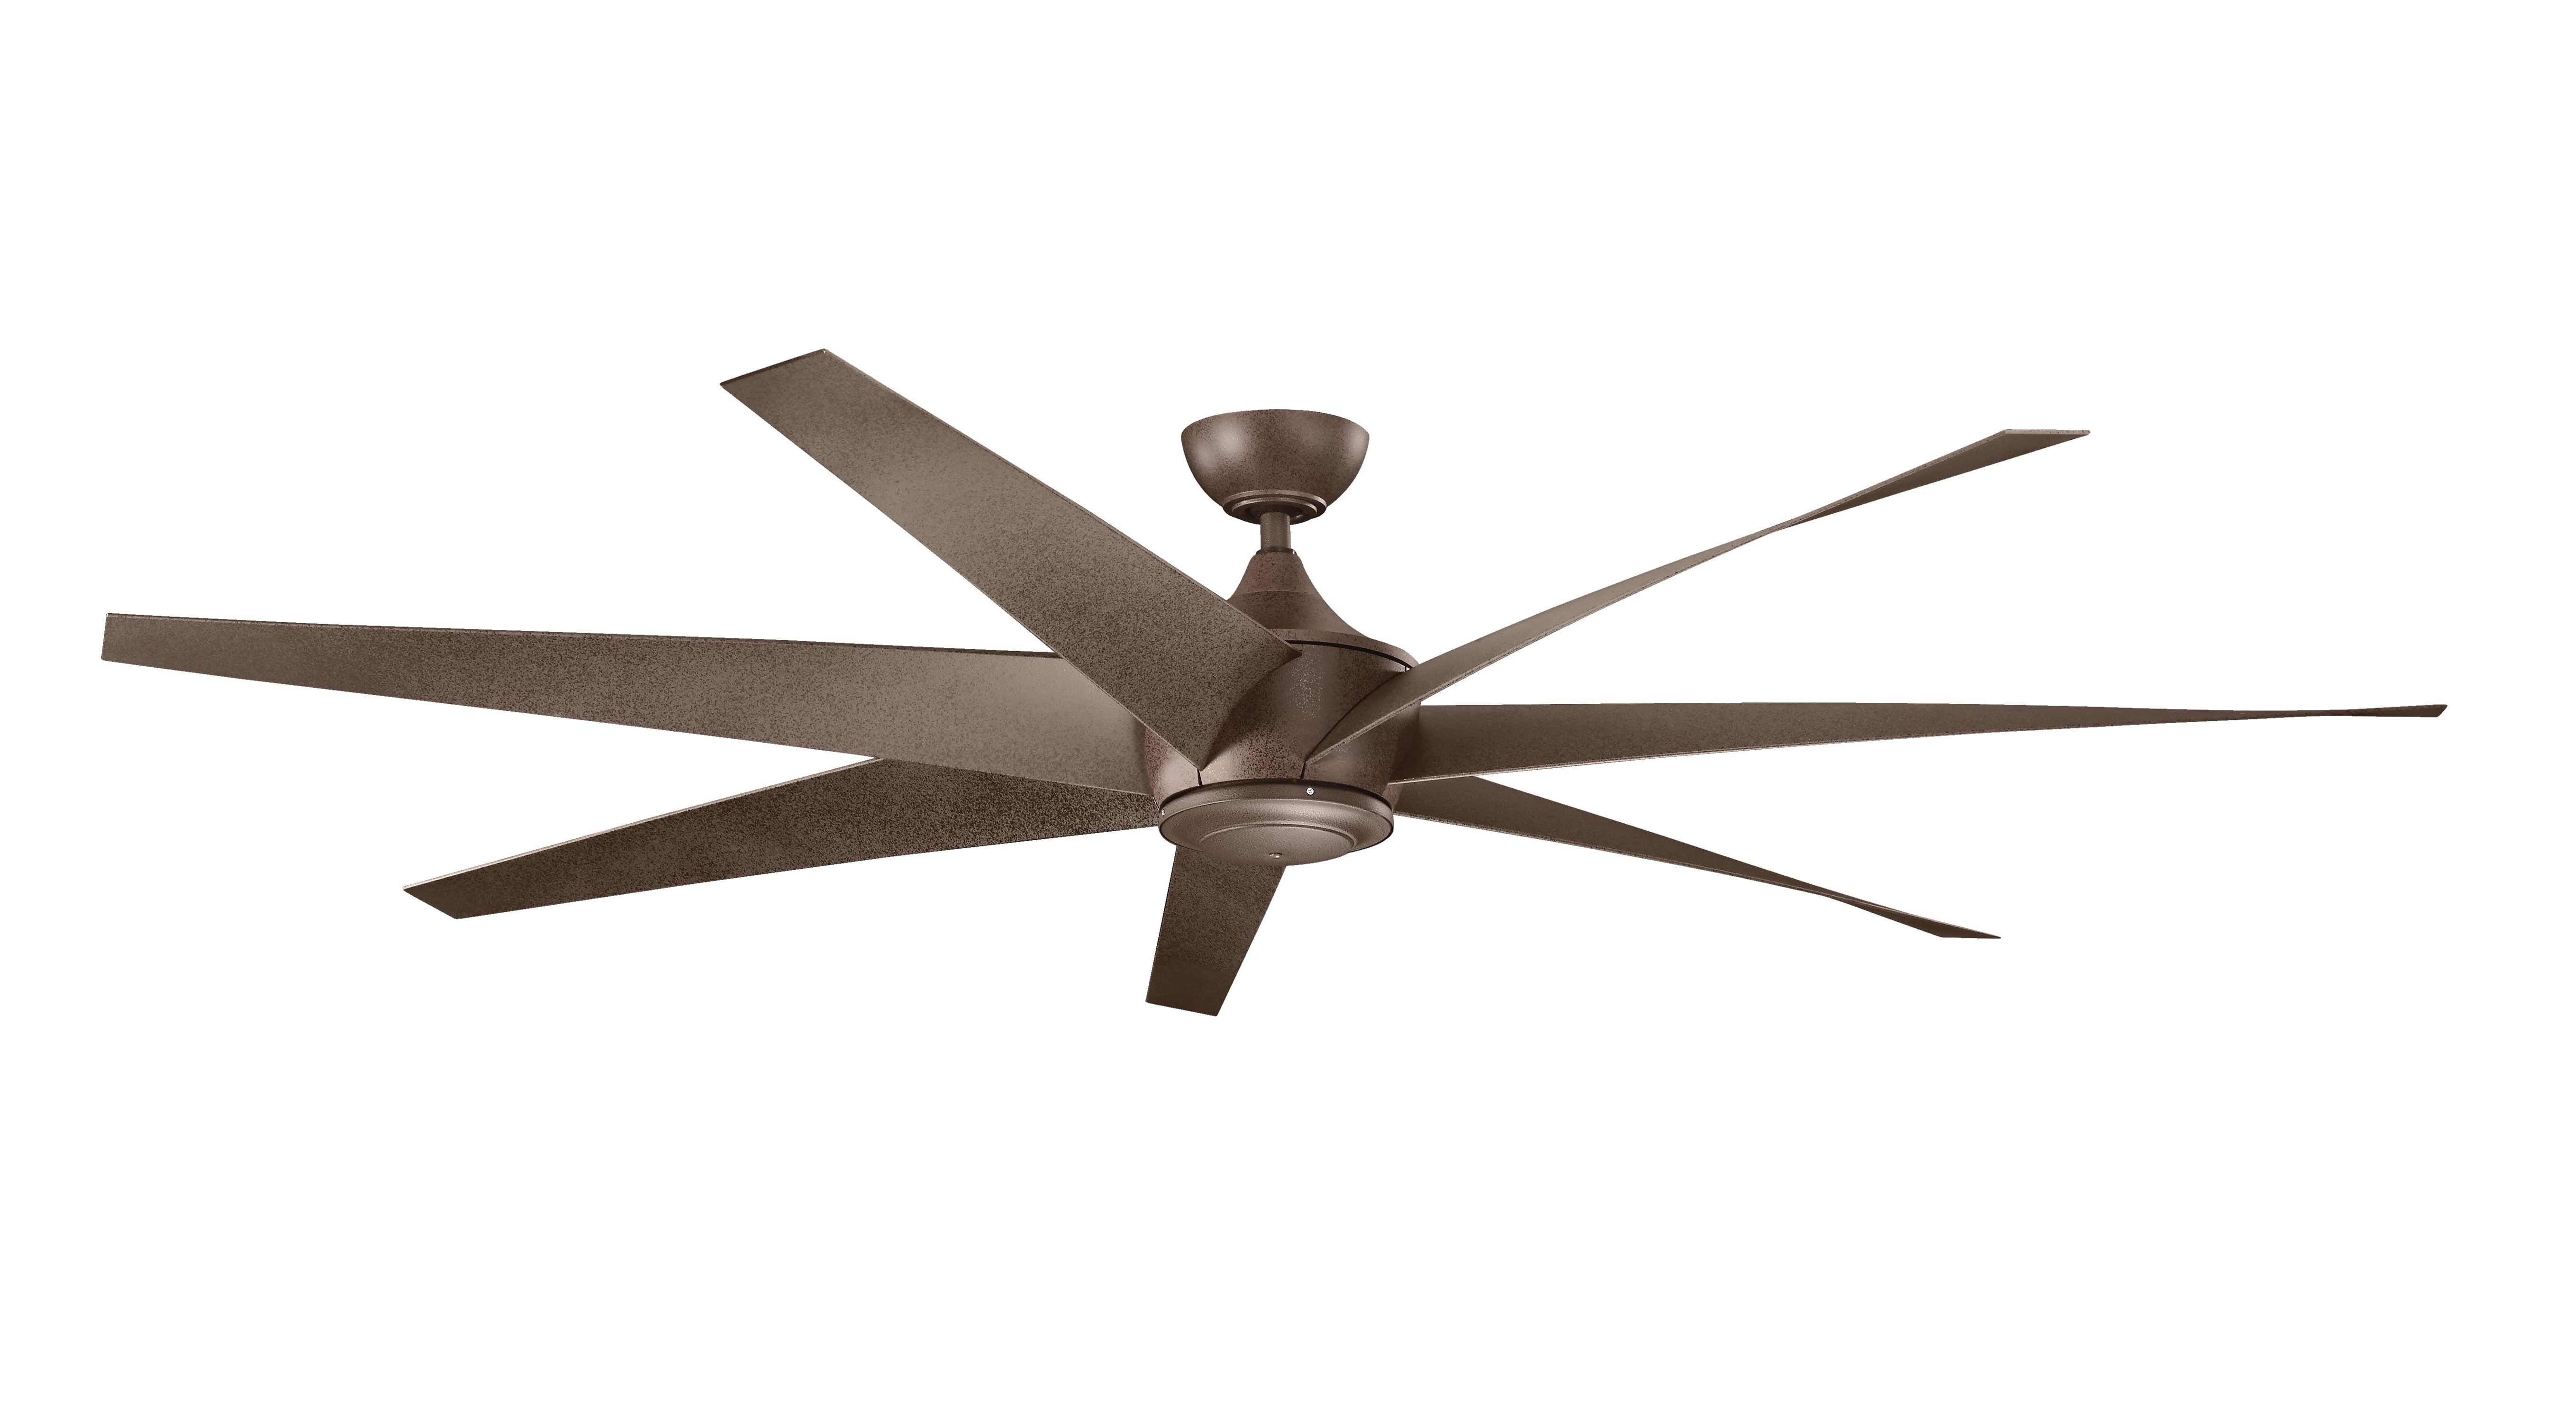 Well Known Kichler Lehr Wet Climate Dc Ceiling Fan – New For 2016 For 72 Predator Bronze Outdoor Ceiling Fans With Light Kit (View 6 of 20)